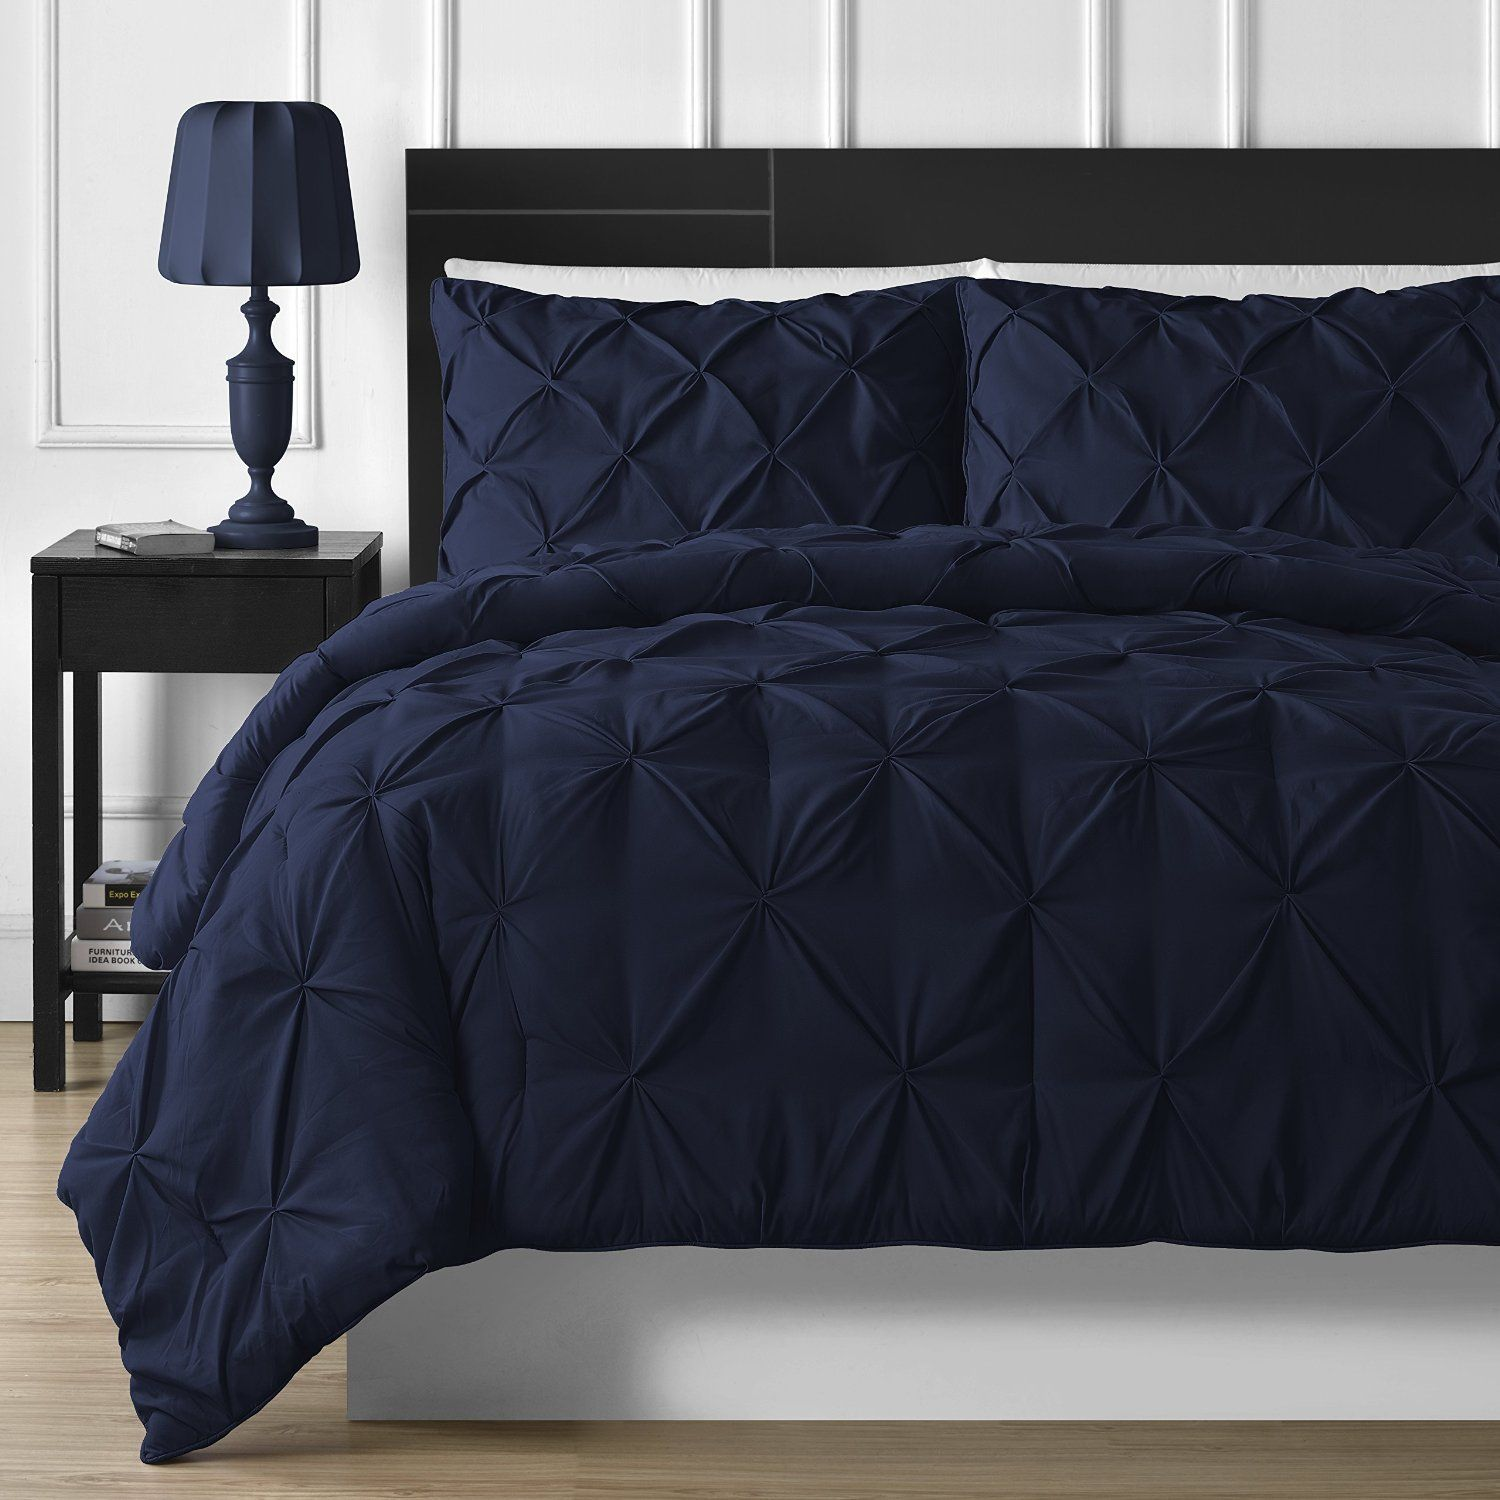 Pr bedding 3 piece luxurious pinch pleat comforter set king navy blue